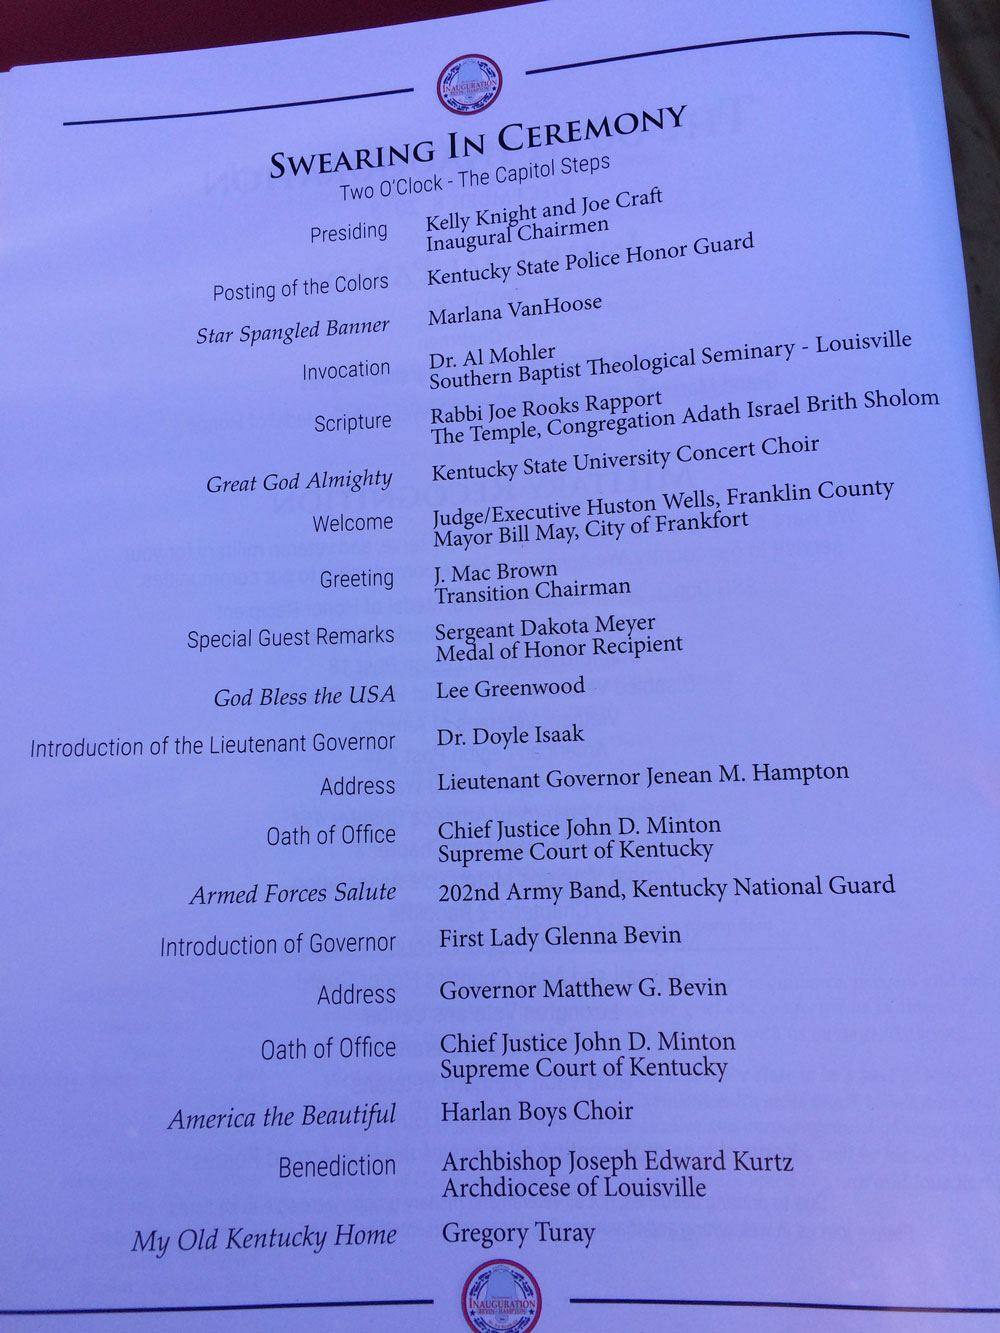 Swearing in Ceremony Schedule